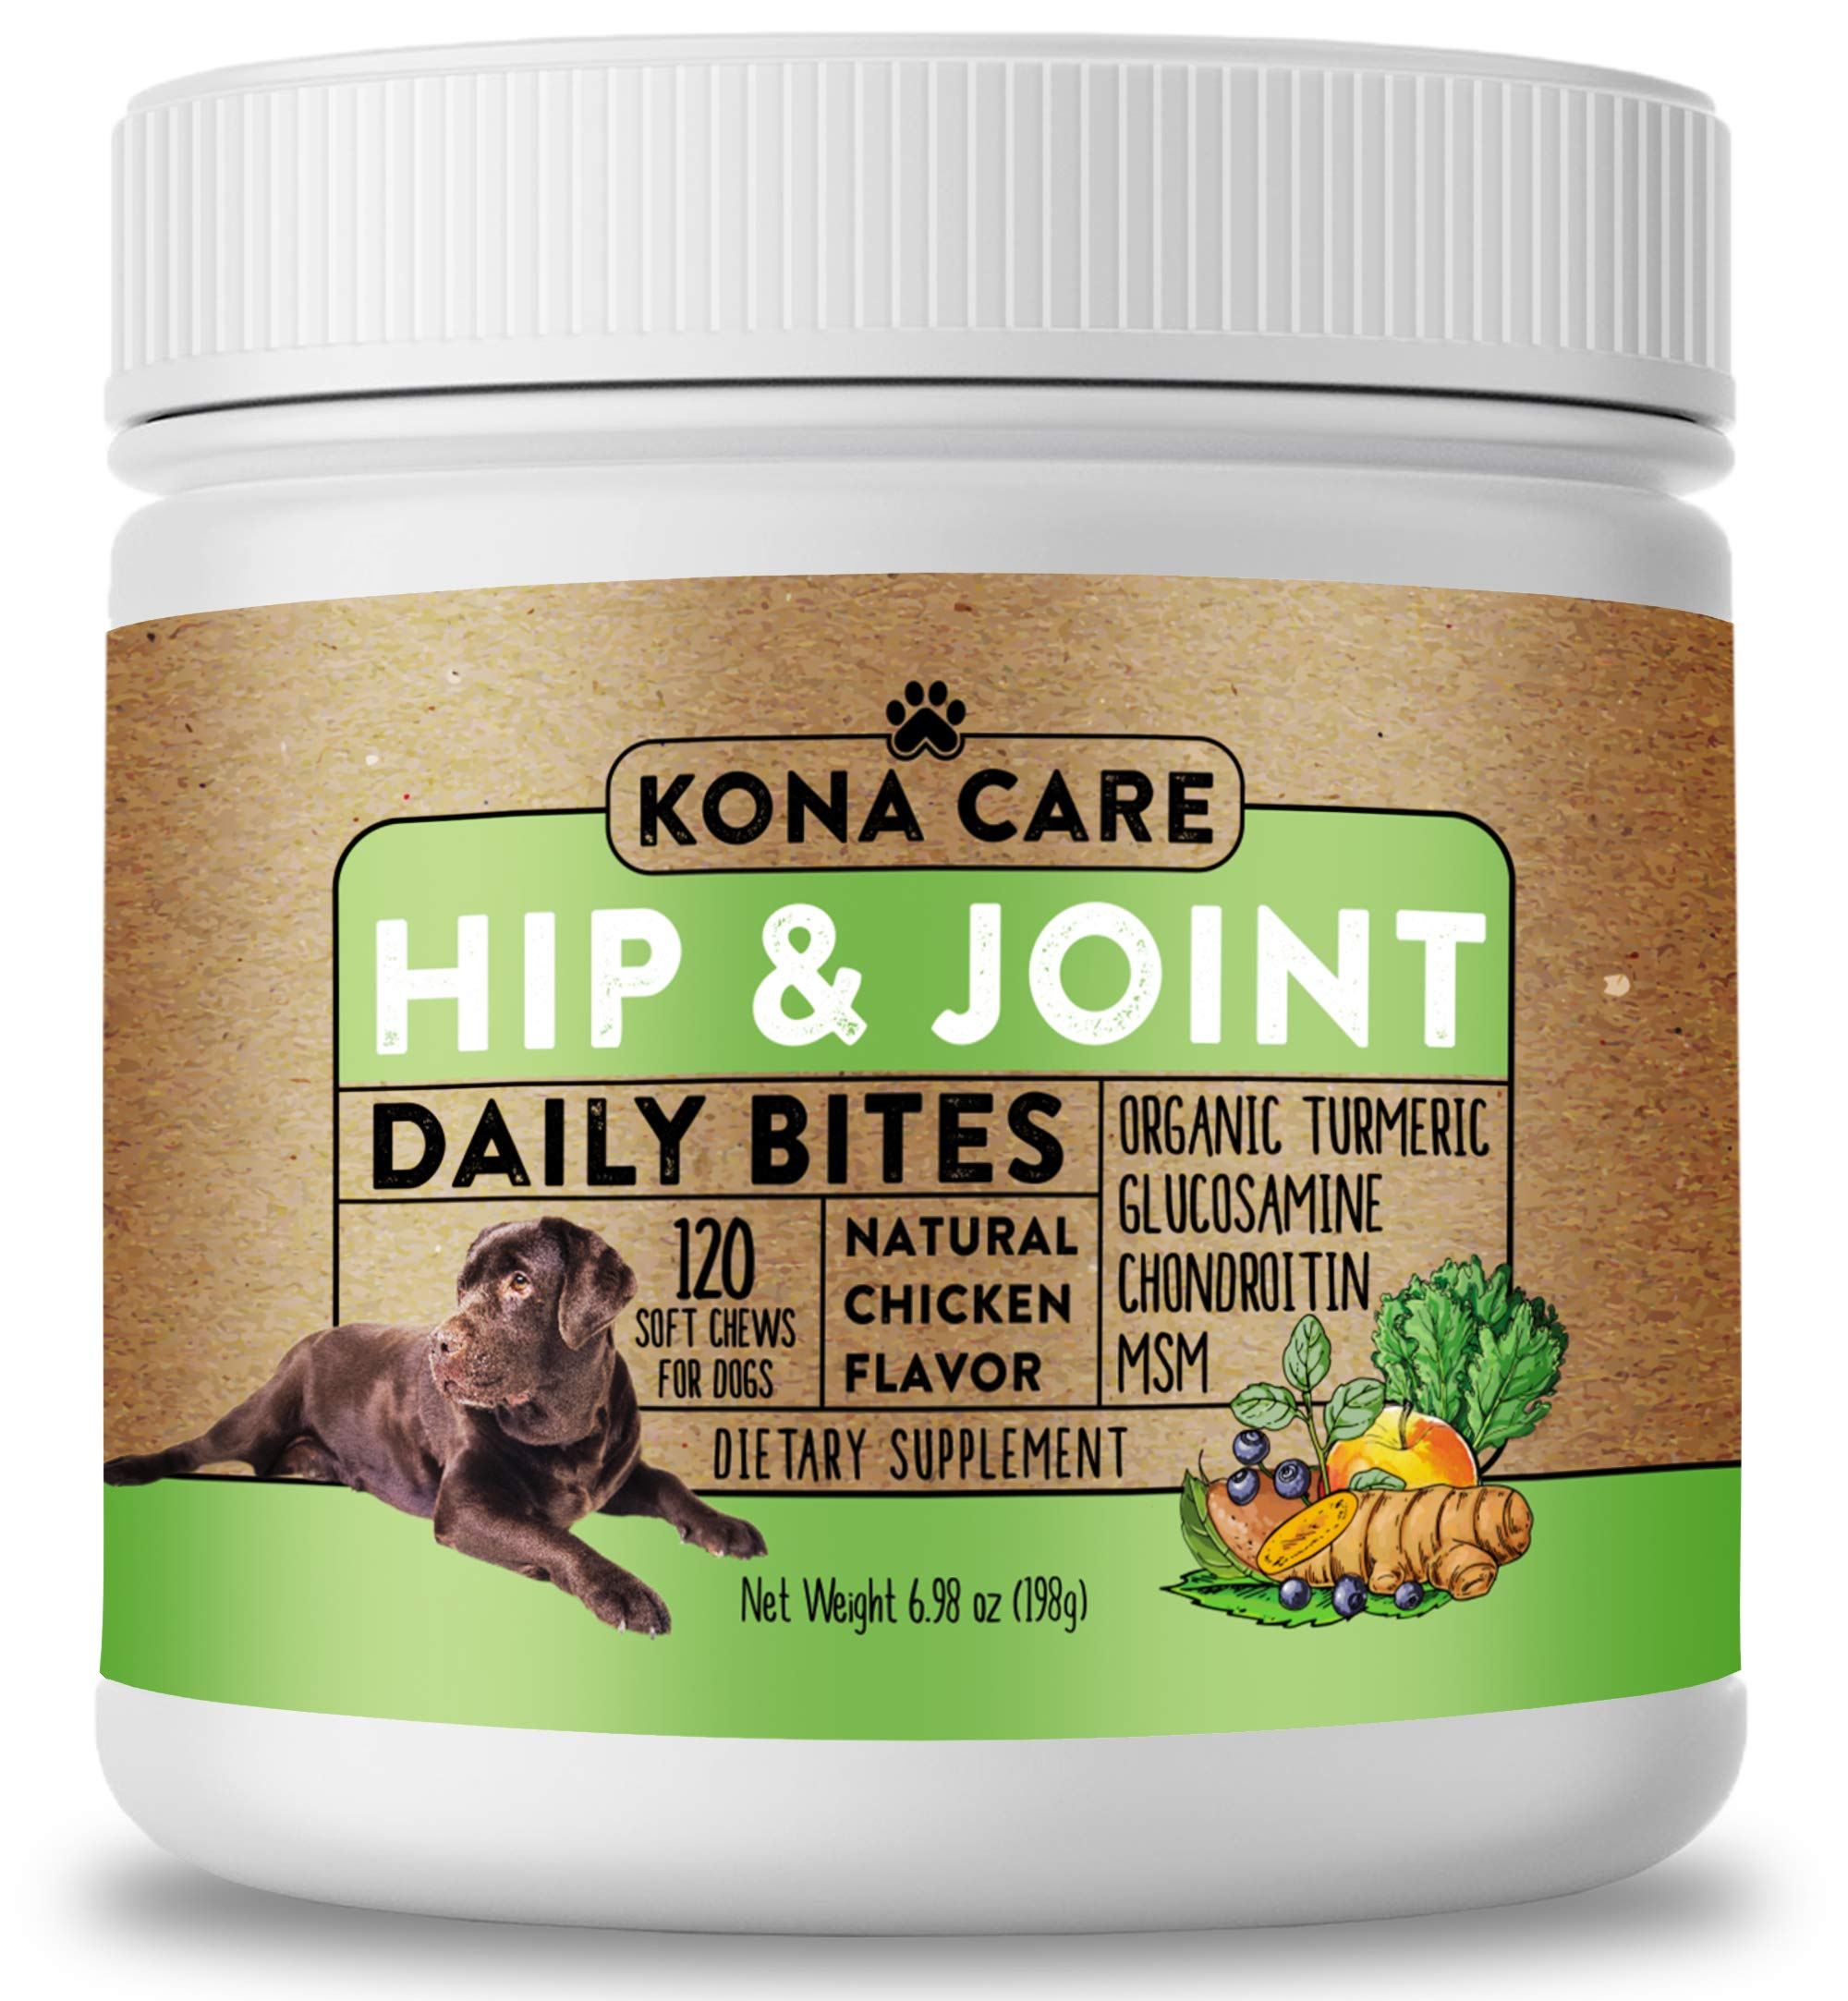 Hip & Joint Supplement for Dogs - Organic Turmeric, Glucosamine, Chondroitin, MSM - Made with All-Natural Ingredients - Supports Healthy Joints & Improves Mobility, Large & Small Dogs - 120 Soft Chews by Kona Care